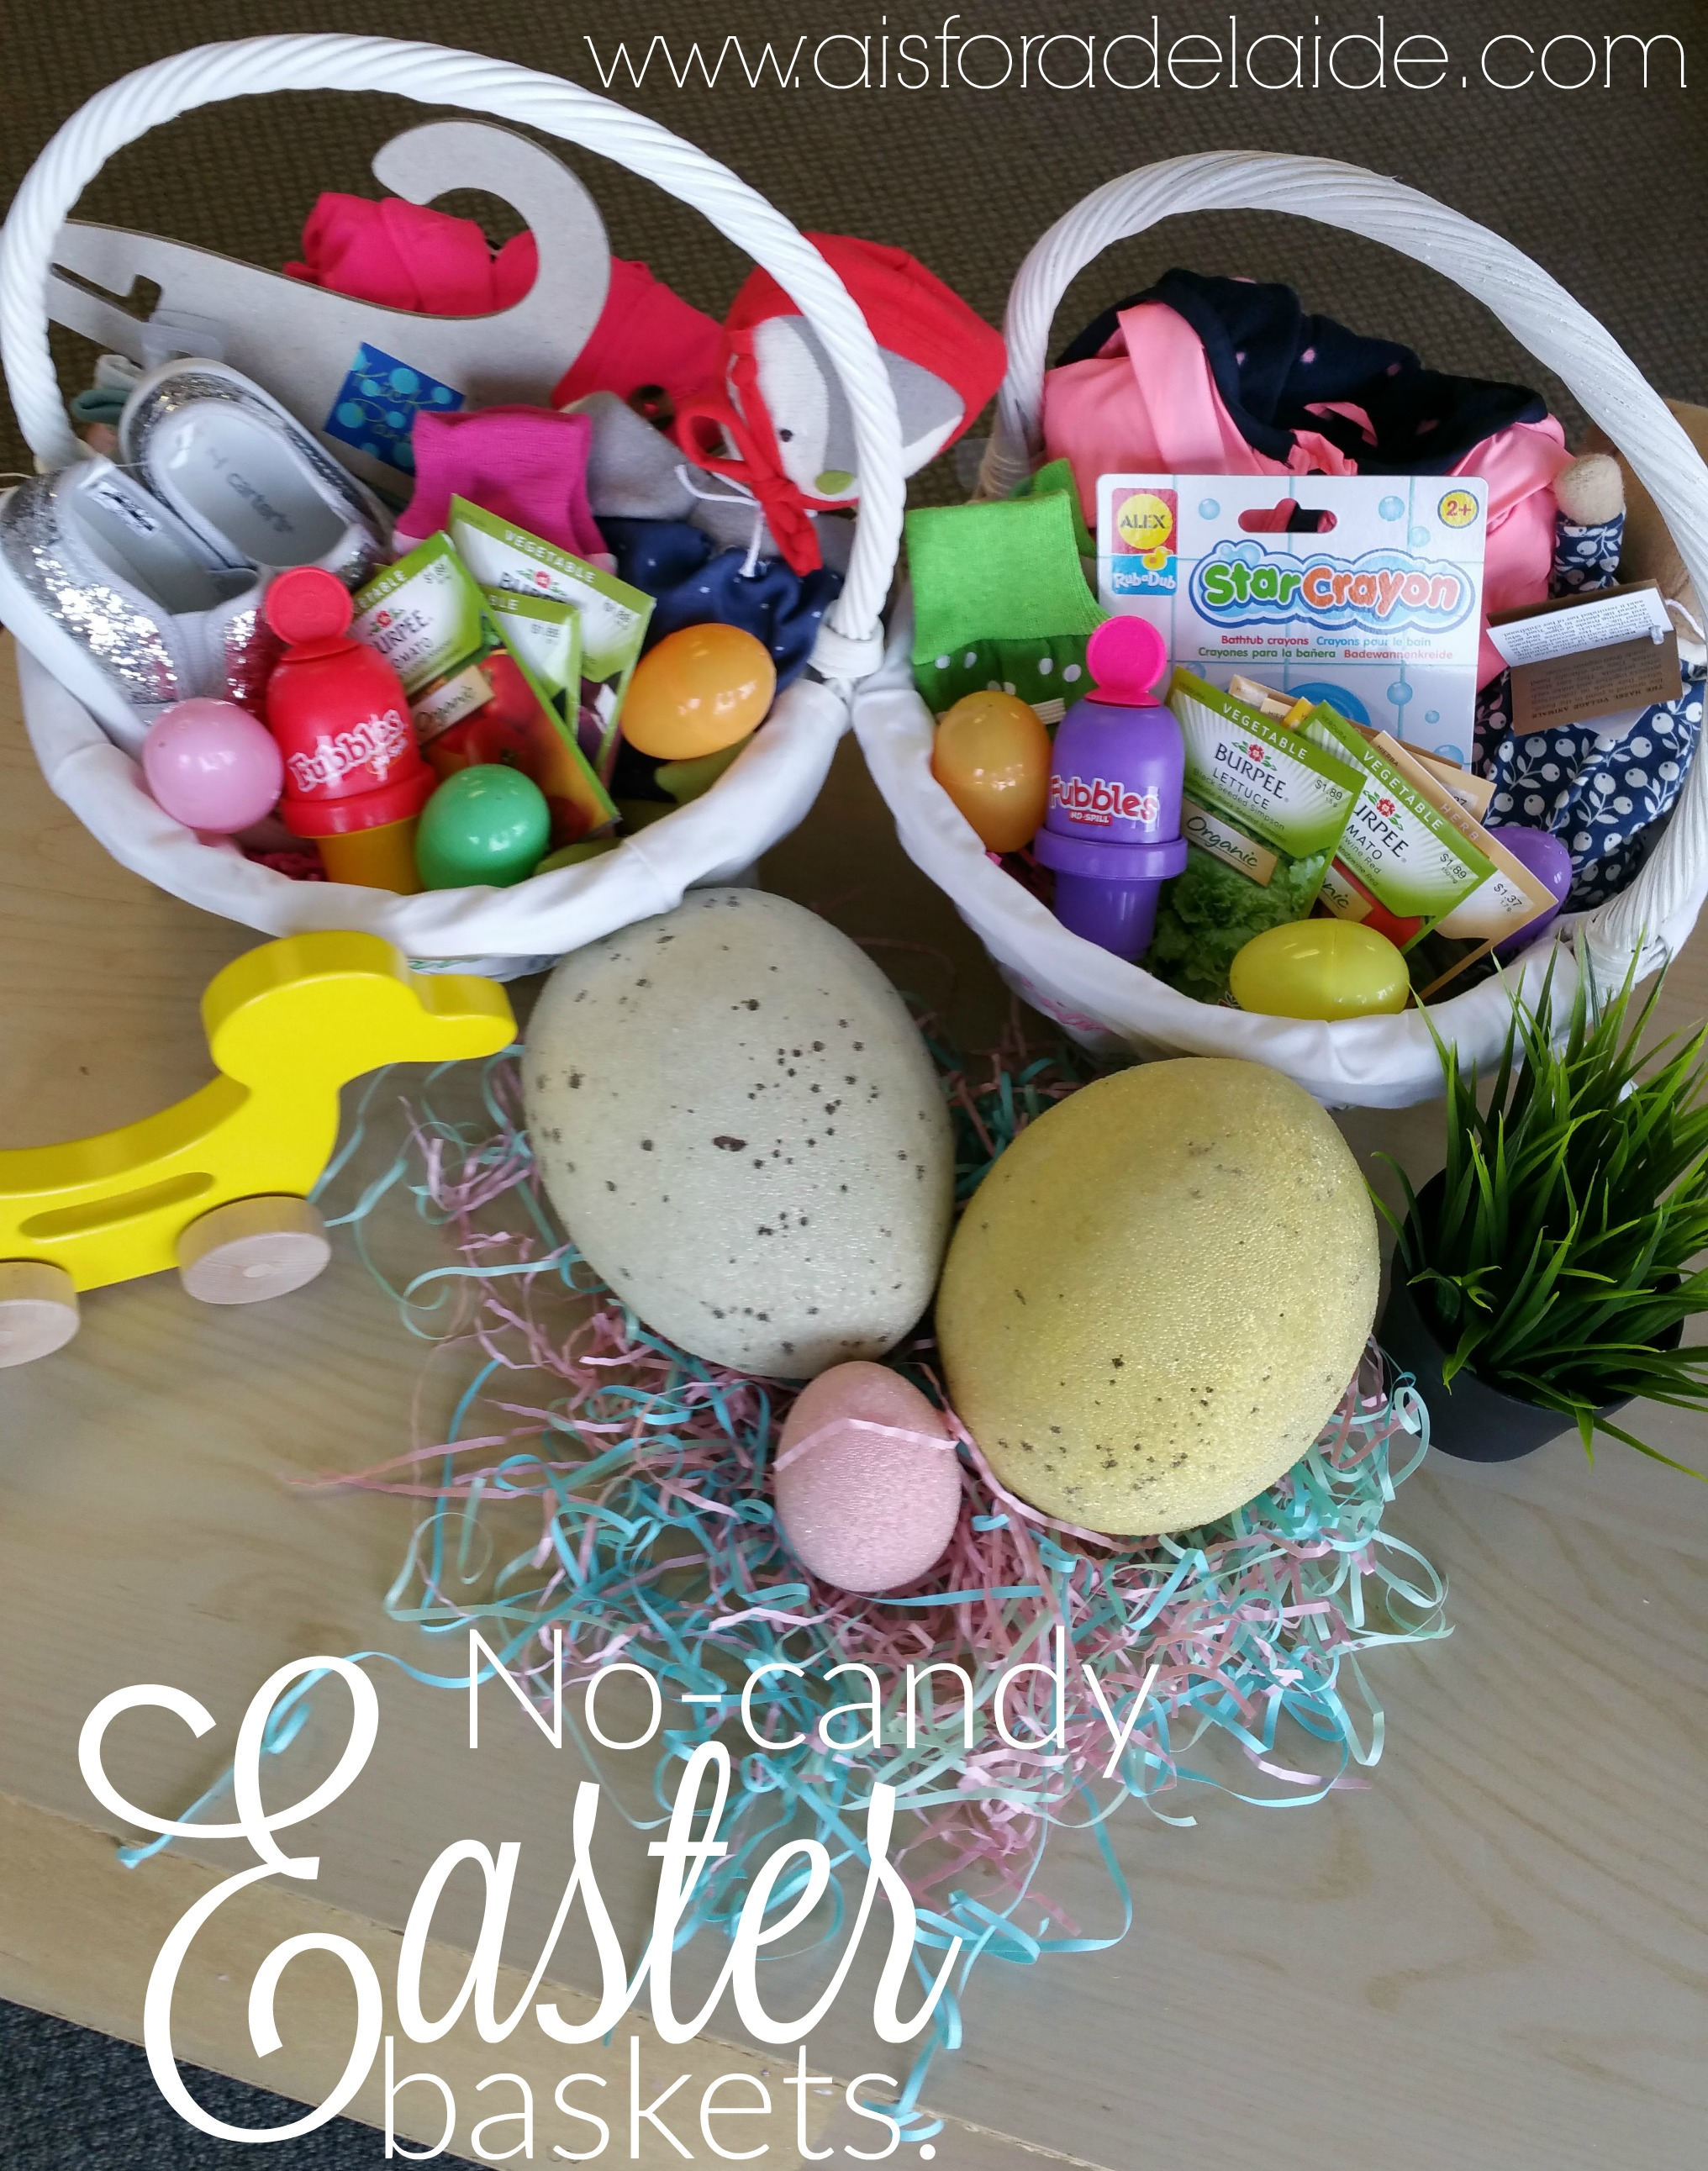 The perfect no-candy ideas for Easter baskets.